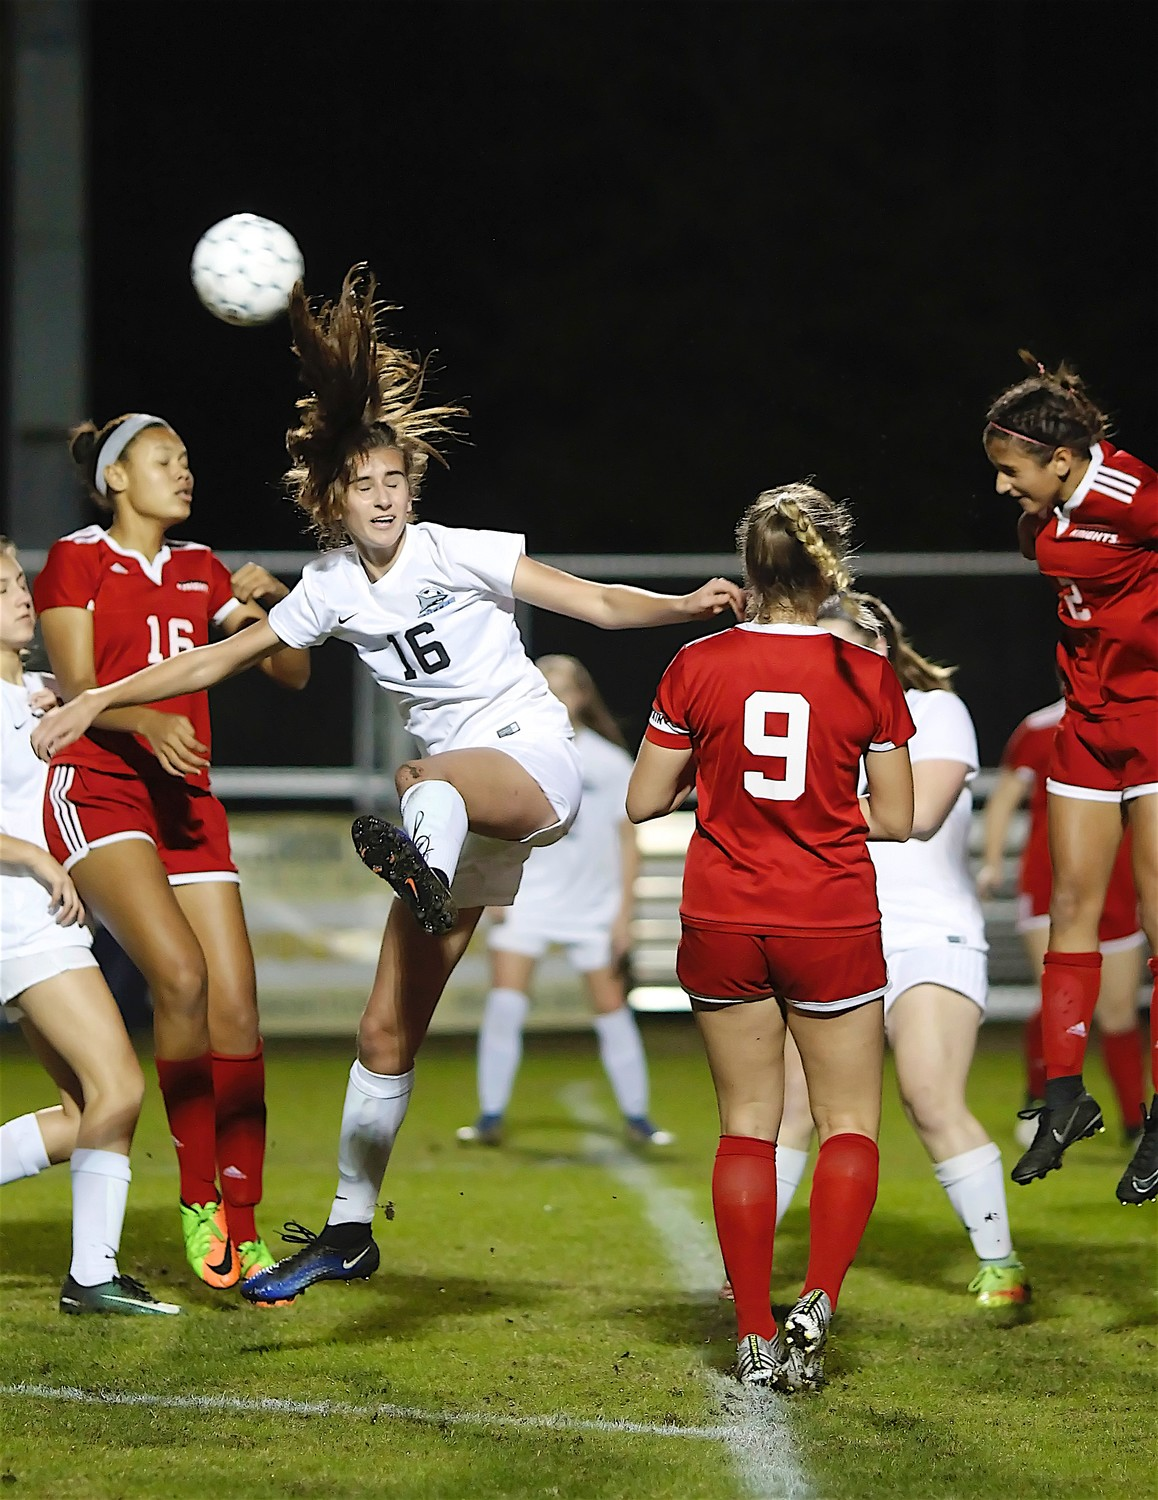 Julia Deal's hair flies as she heads the ball for the Sharks.